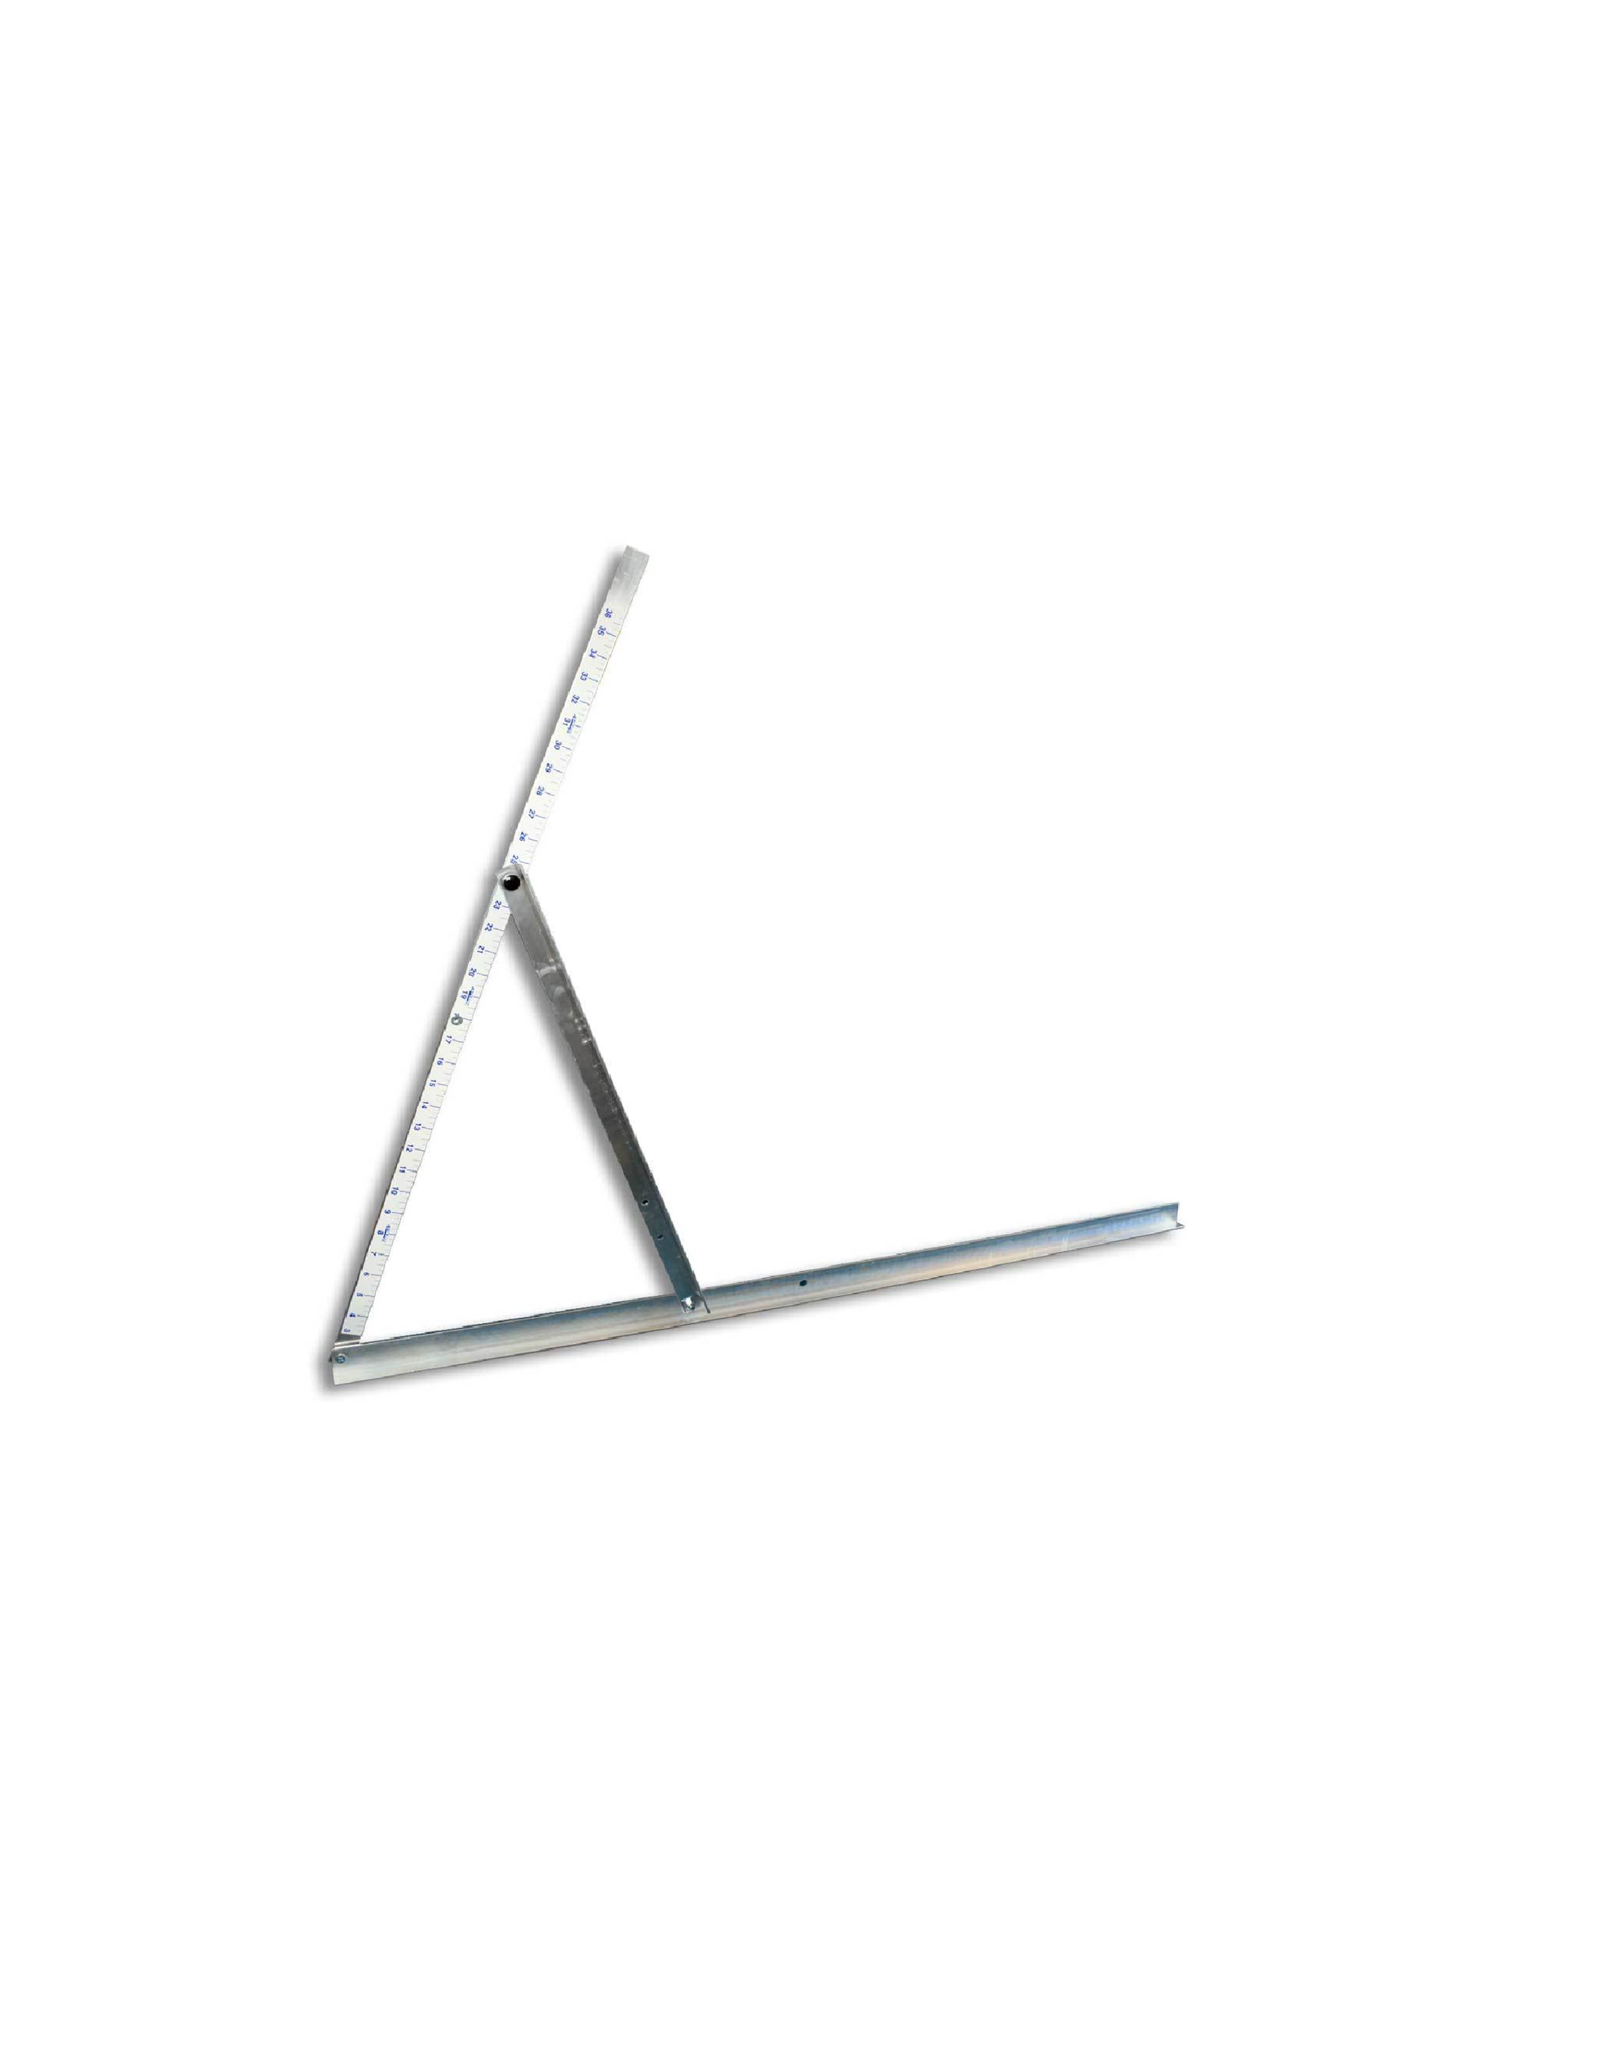 Aluminum Stands NOA Approved Square Duct Tool